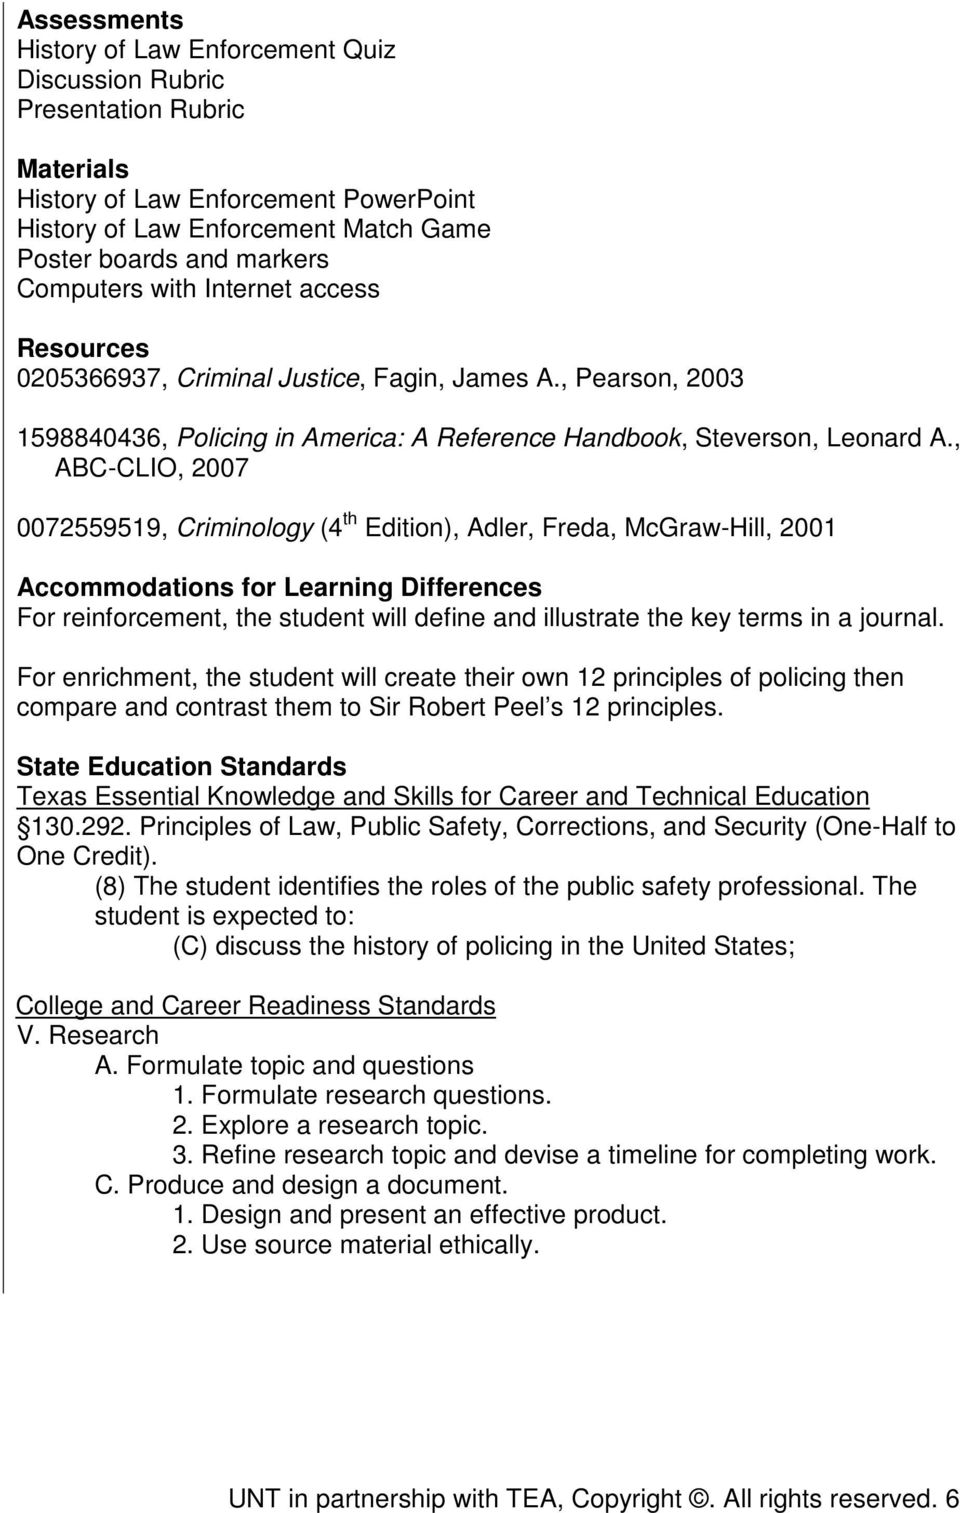 😍 Public safety research topics  Public safety, education